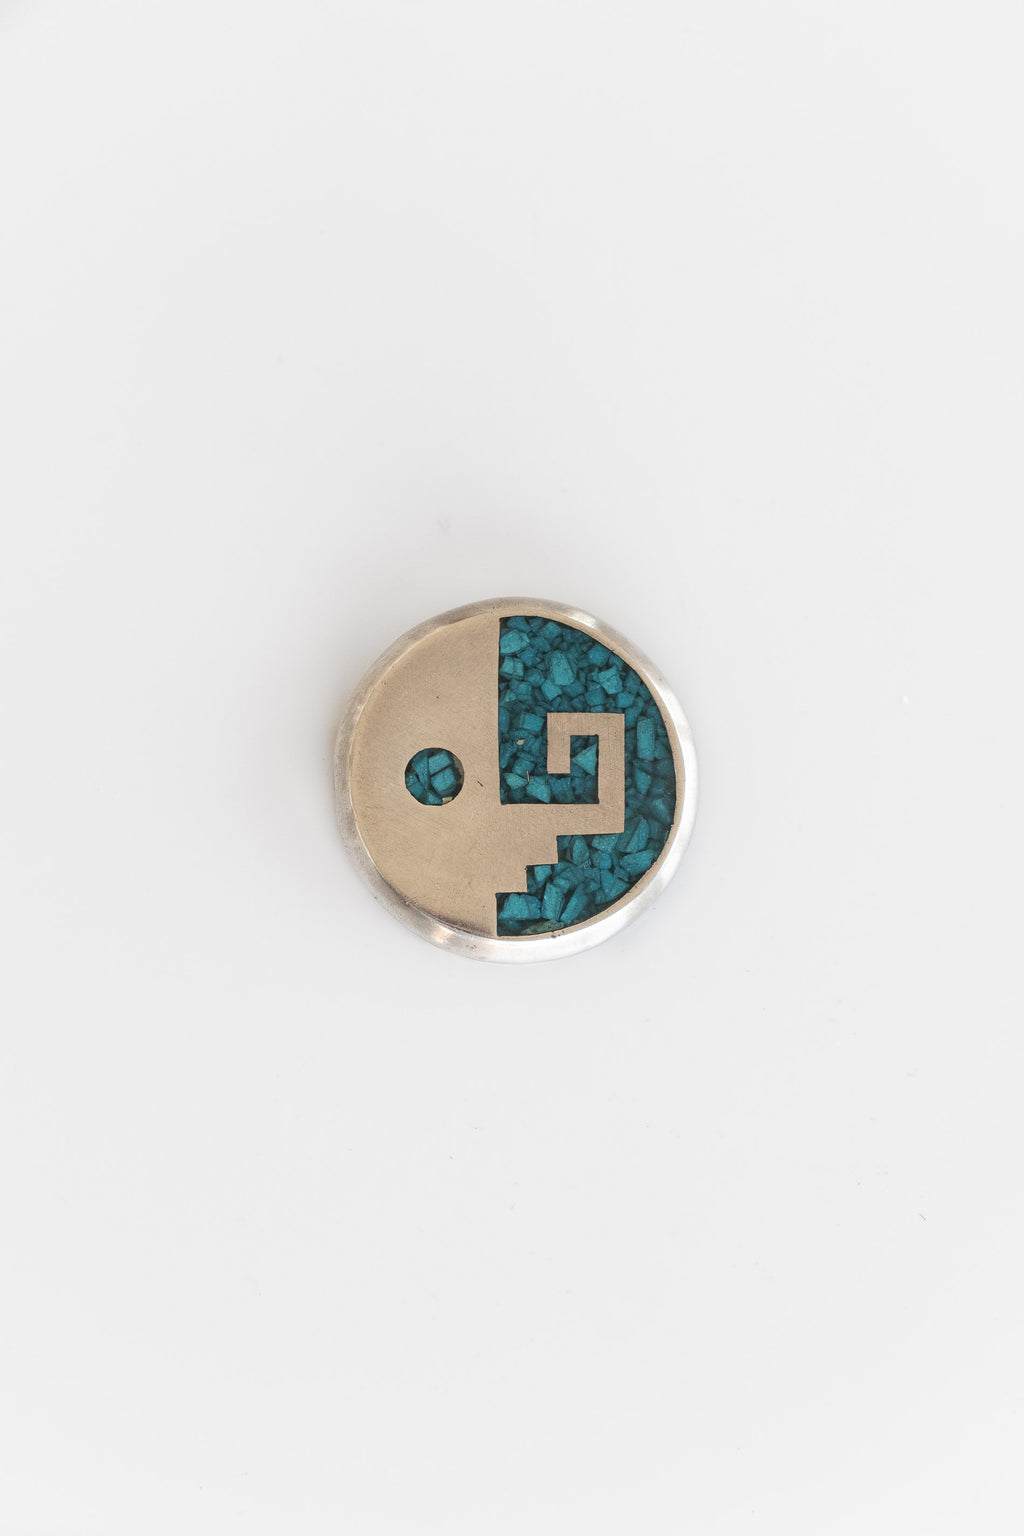 STERLING SILVER + TURQUOISE ABSTRACT YIN YANG PIN